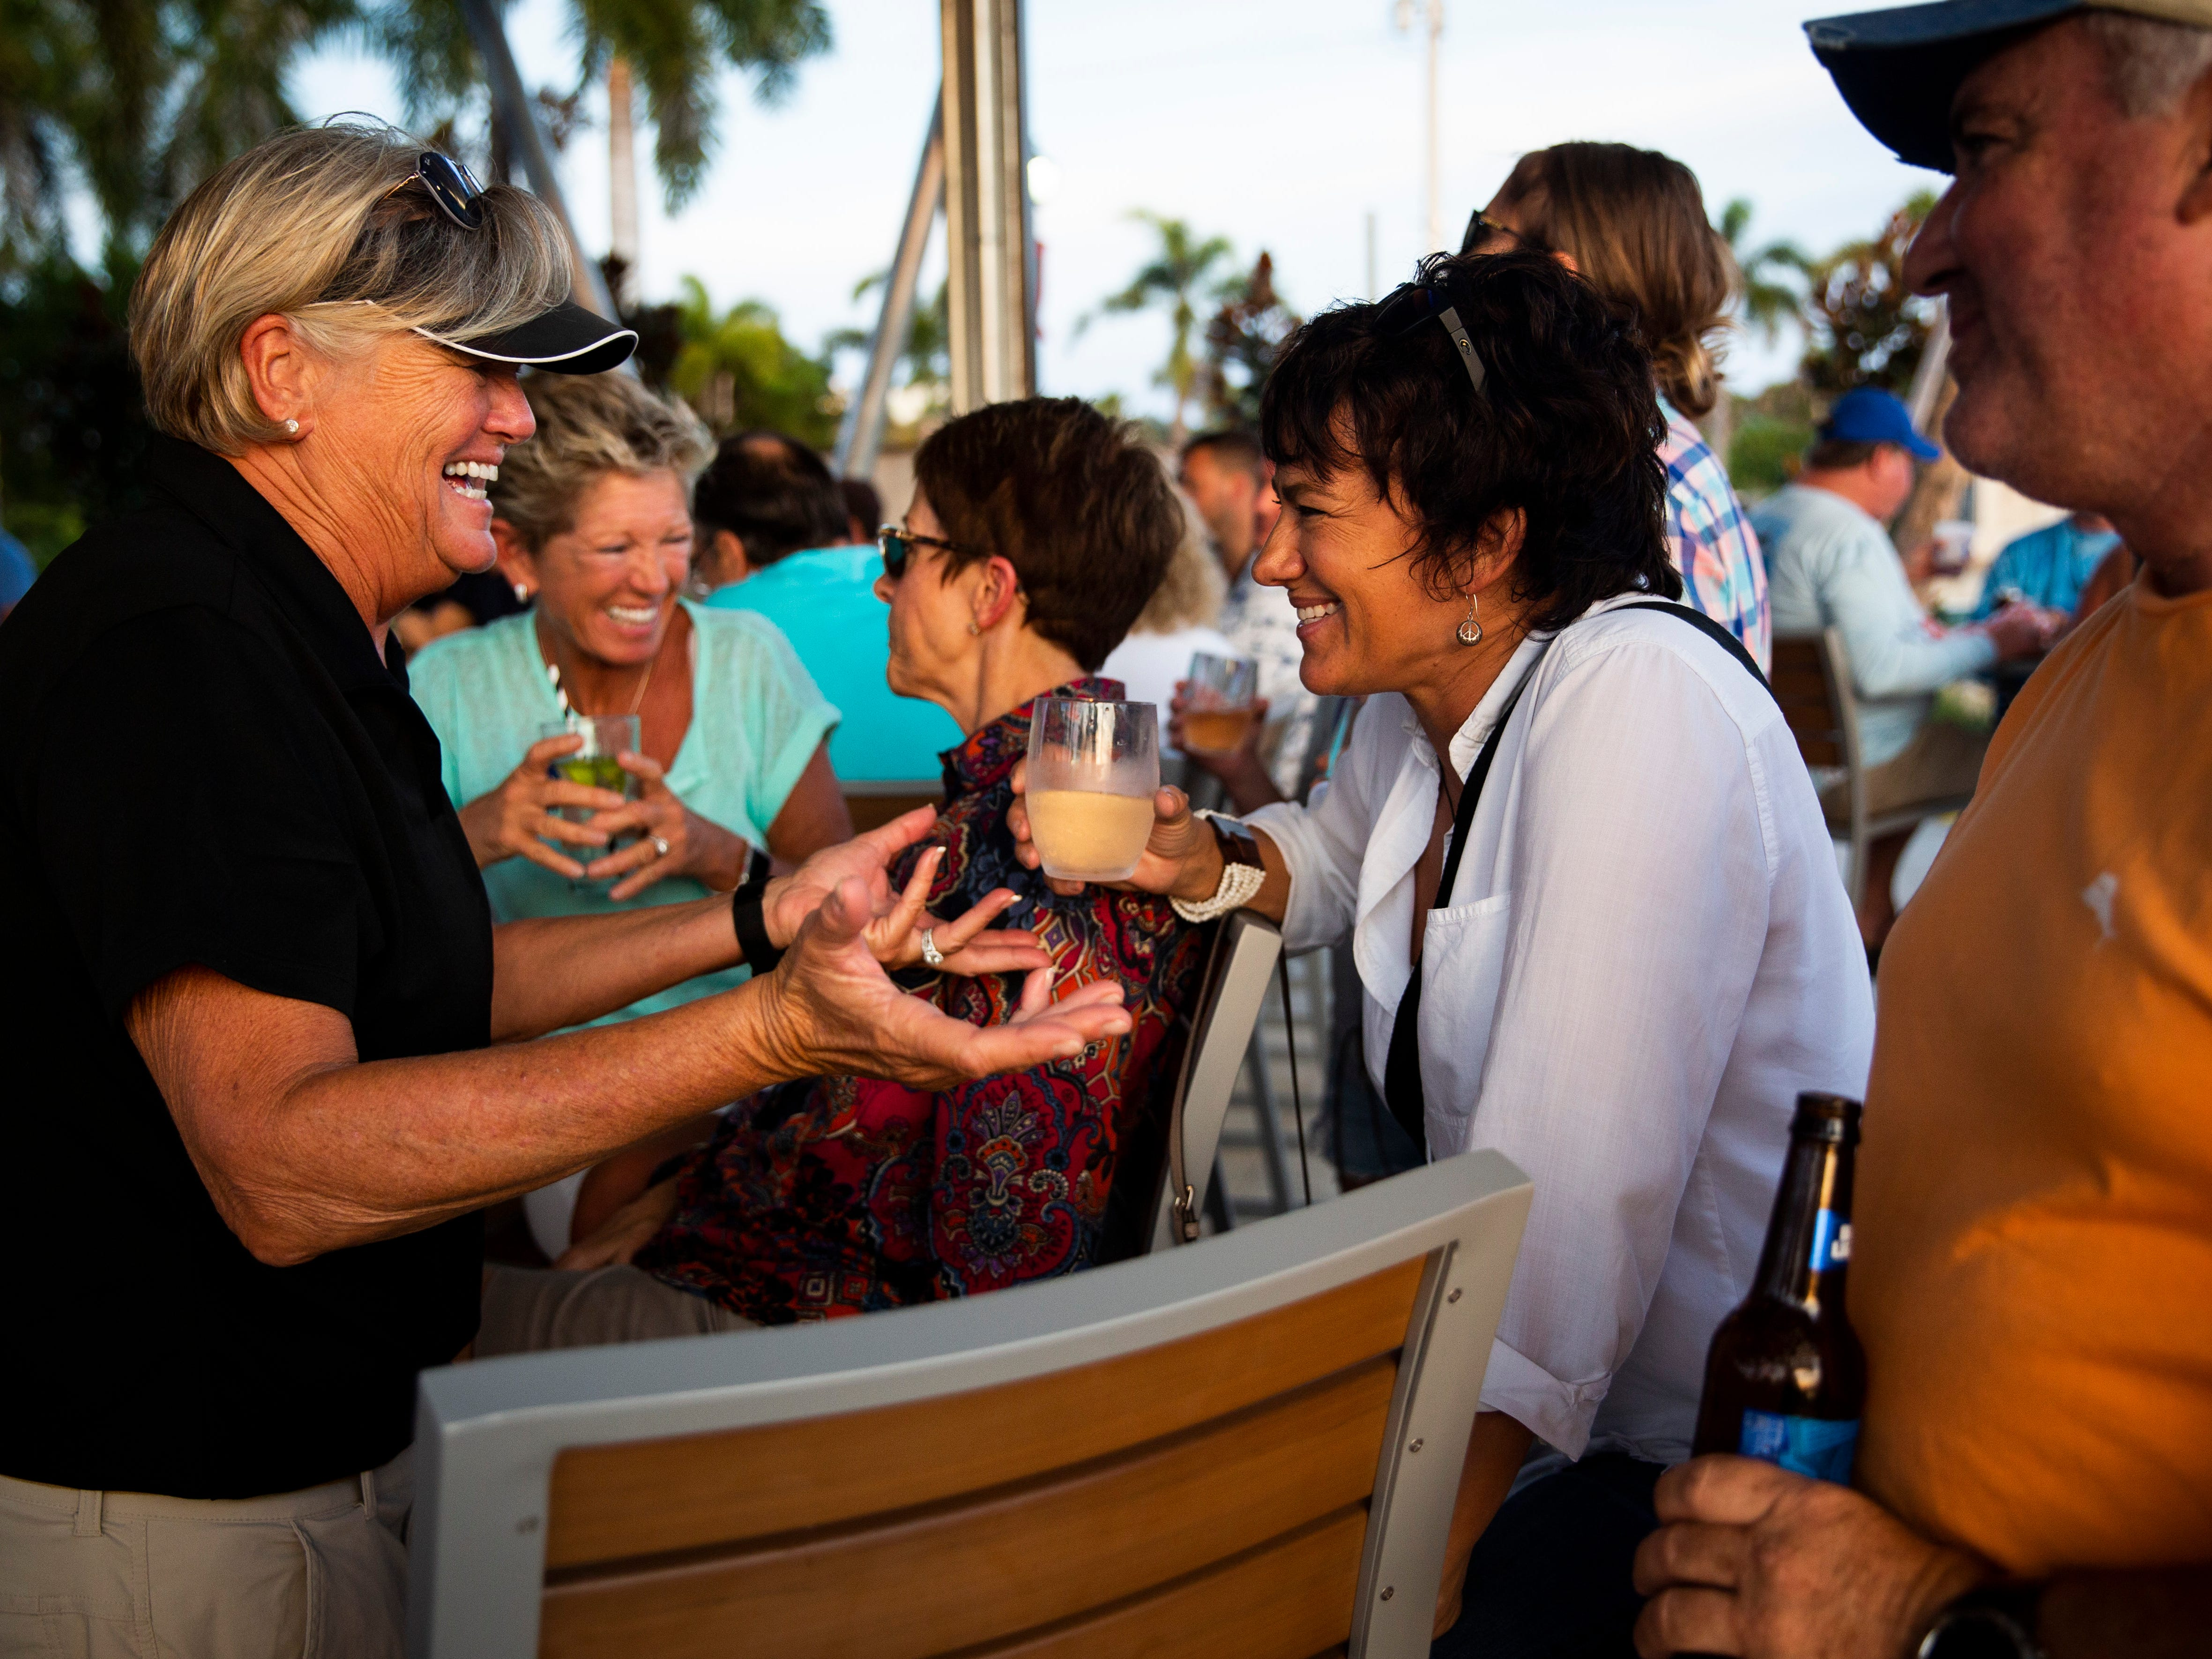 Robin Forbes, left, and Cheri Burton, right, laugh as they drink at the bar on Sunday, Nov. 25, 2018, at Celebration Park in the Bayshore area of East Naples.